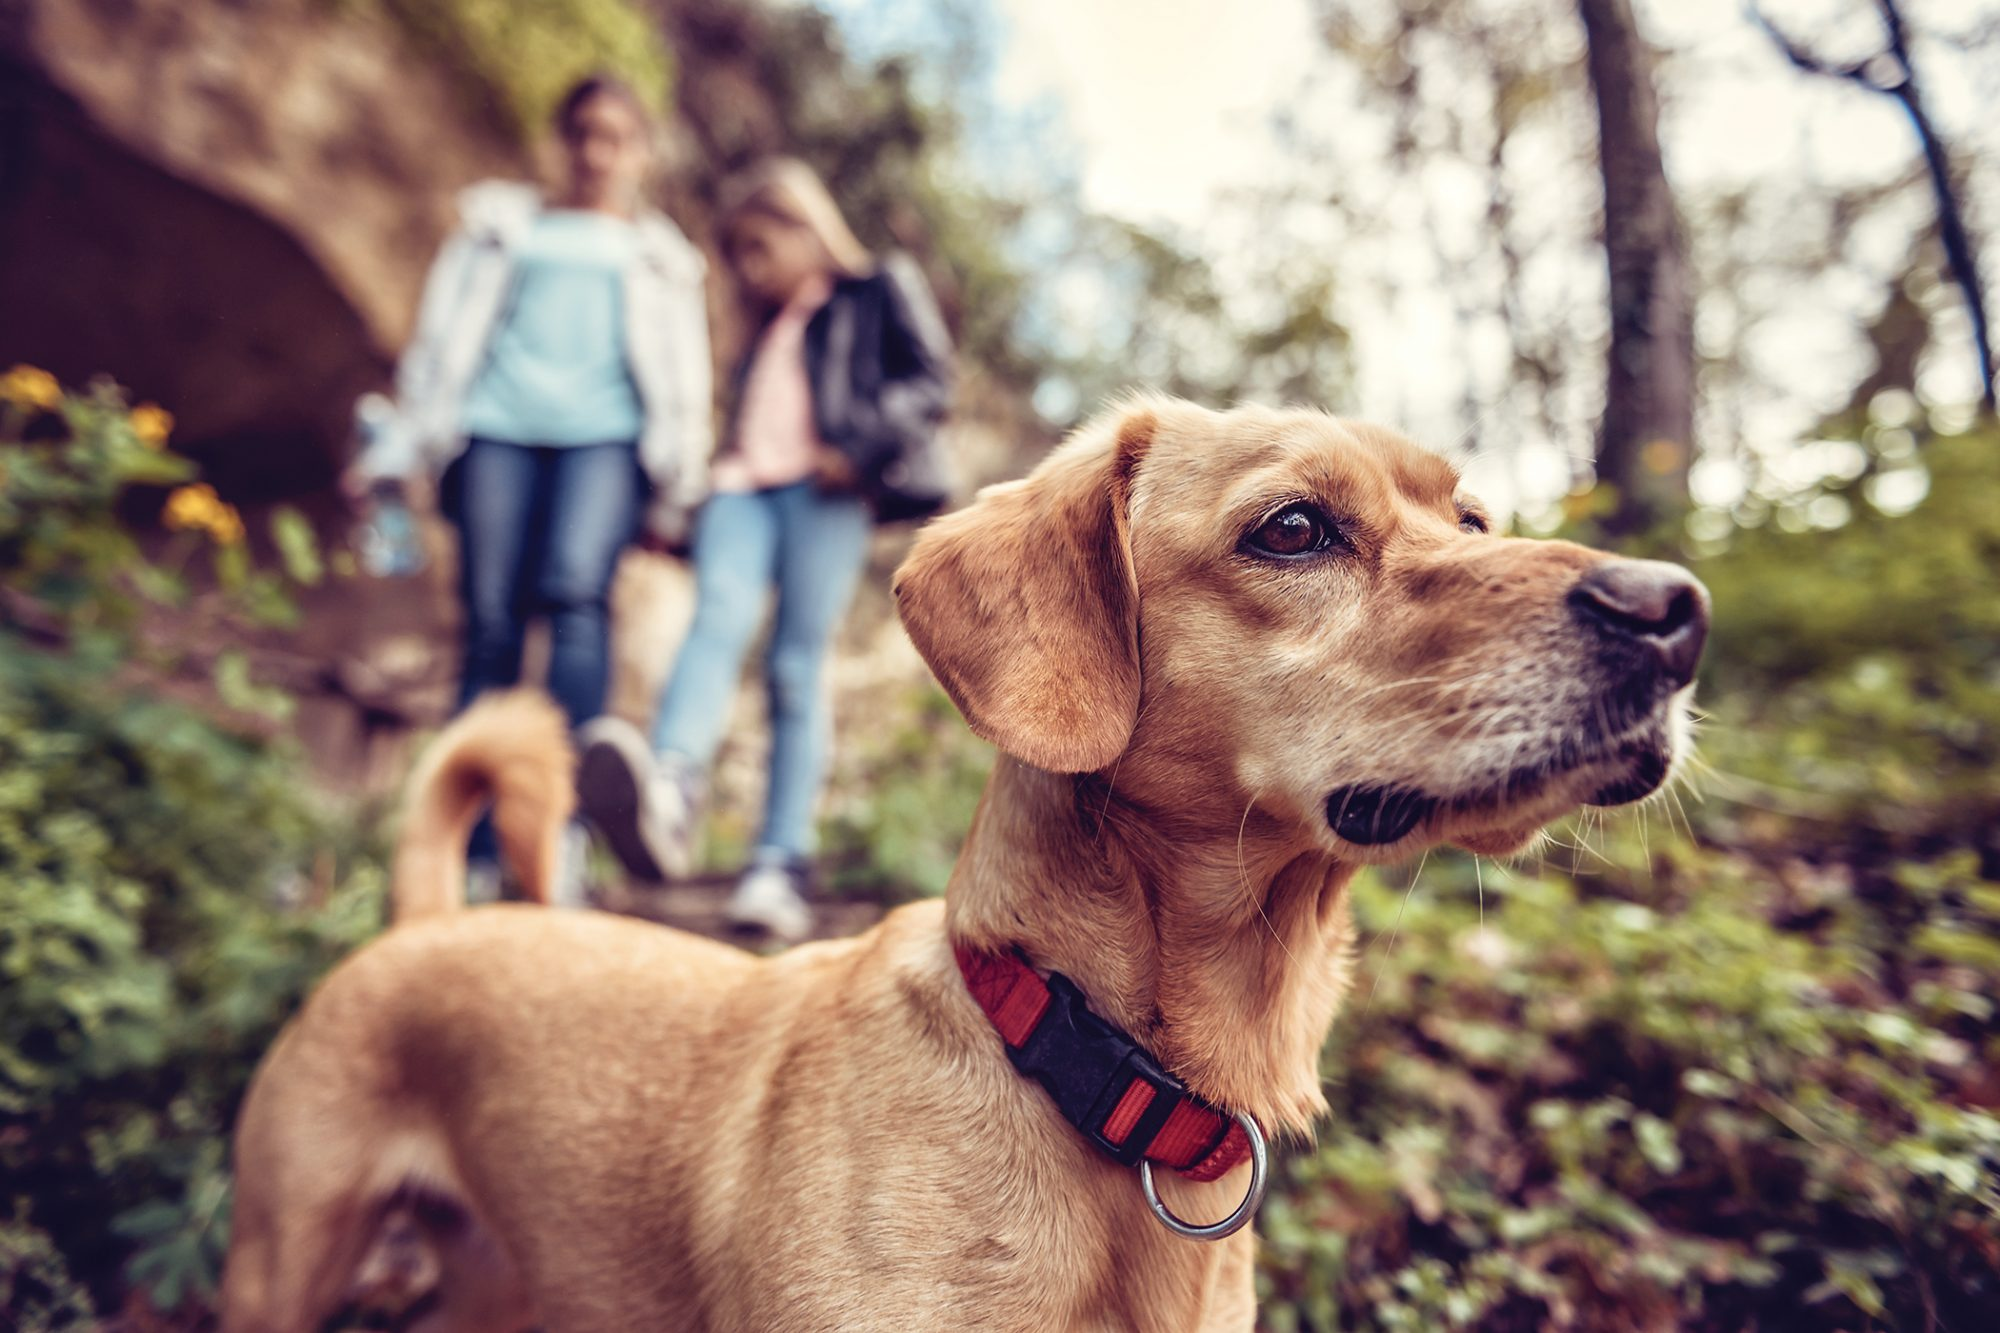 Dog looks off into distance on forest trail, two girls walk behind dog in background